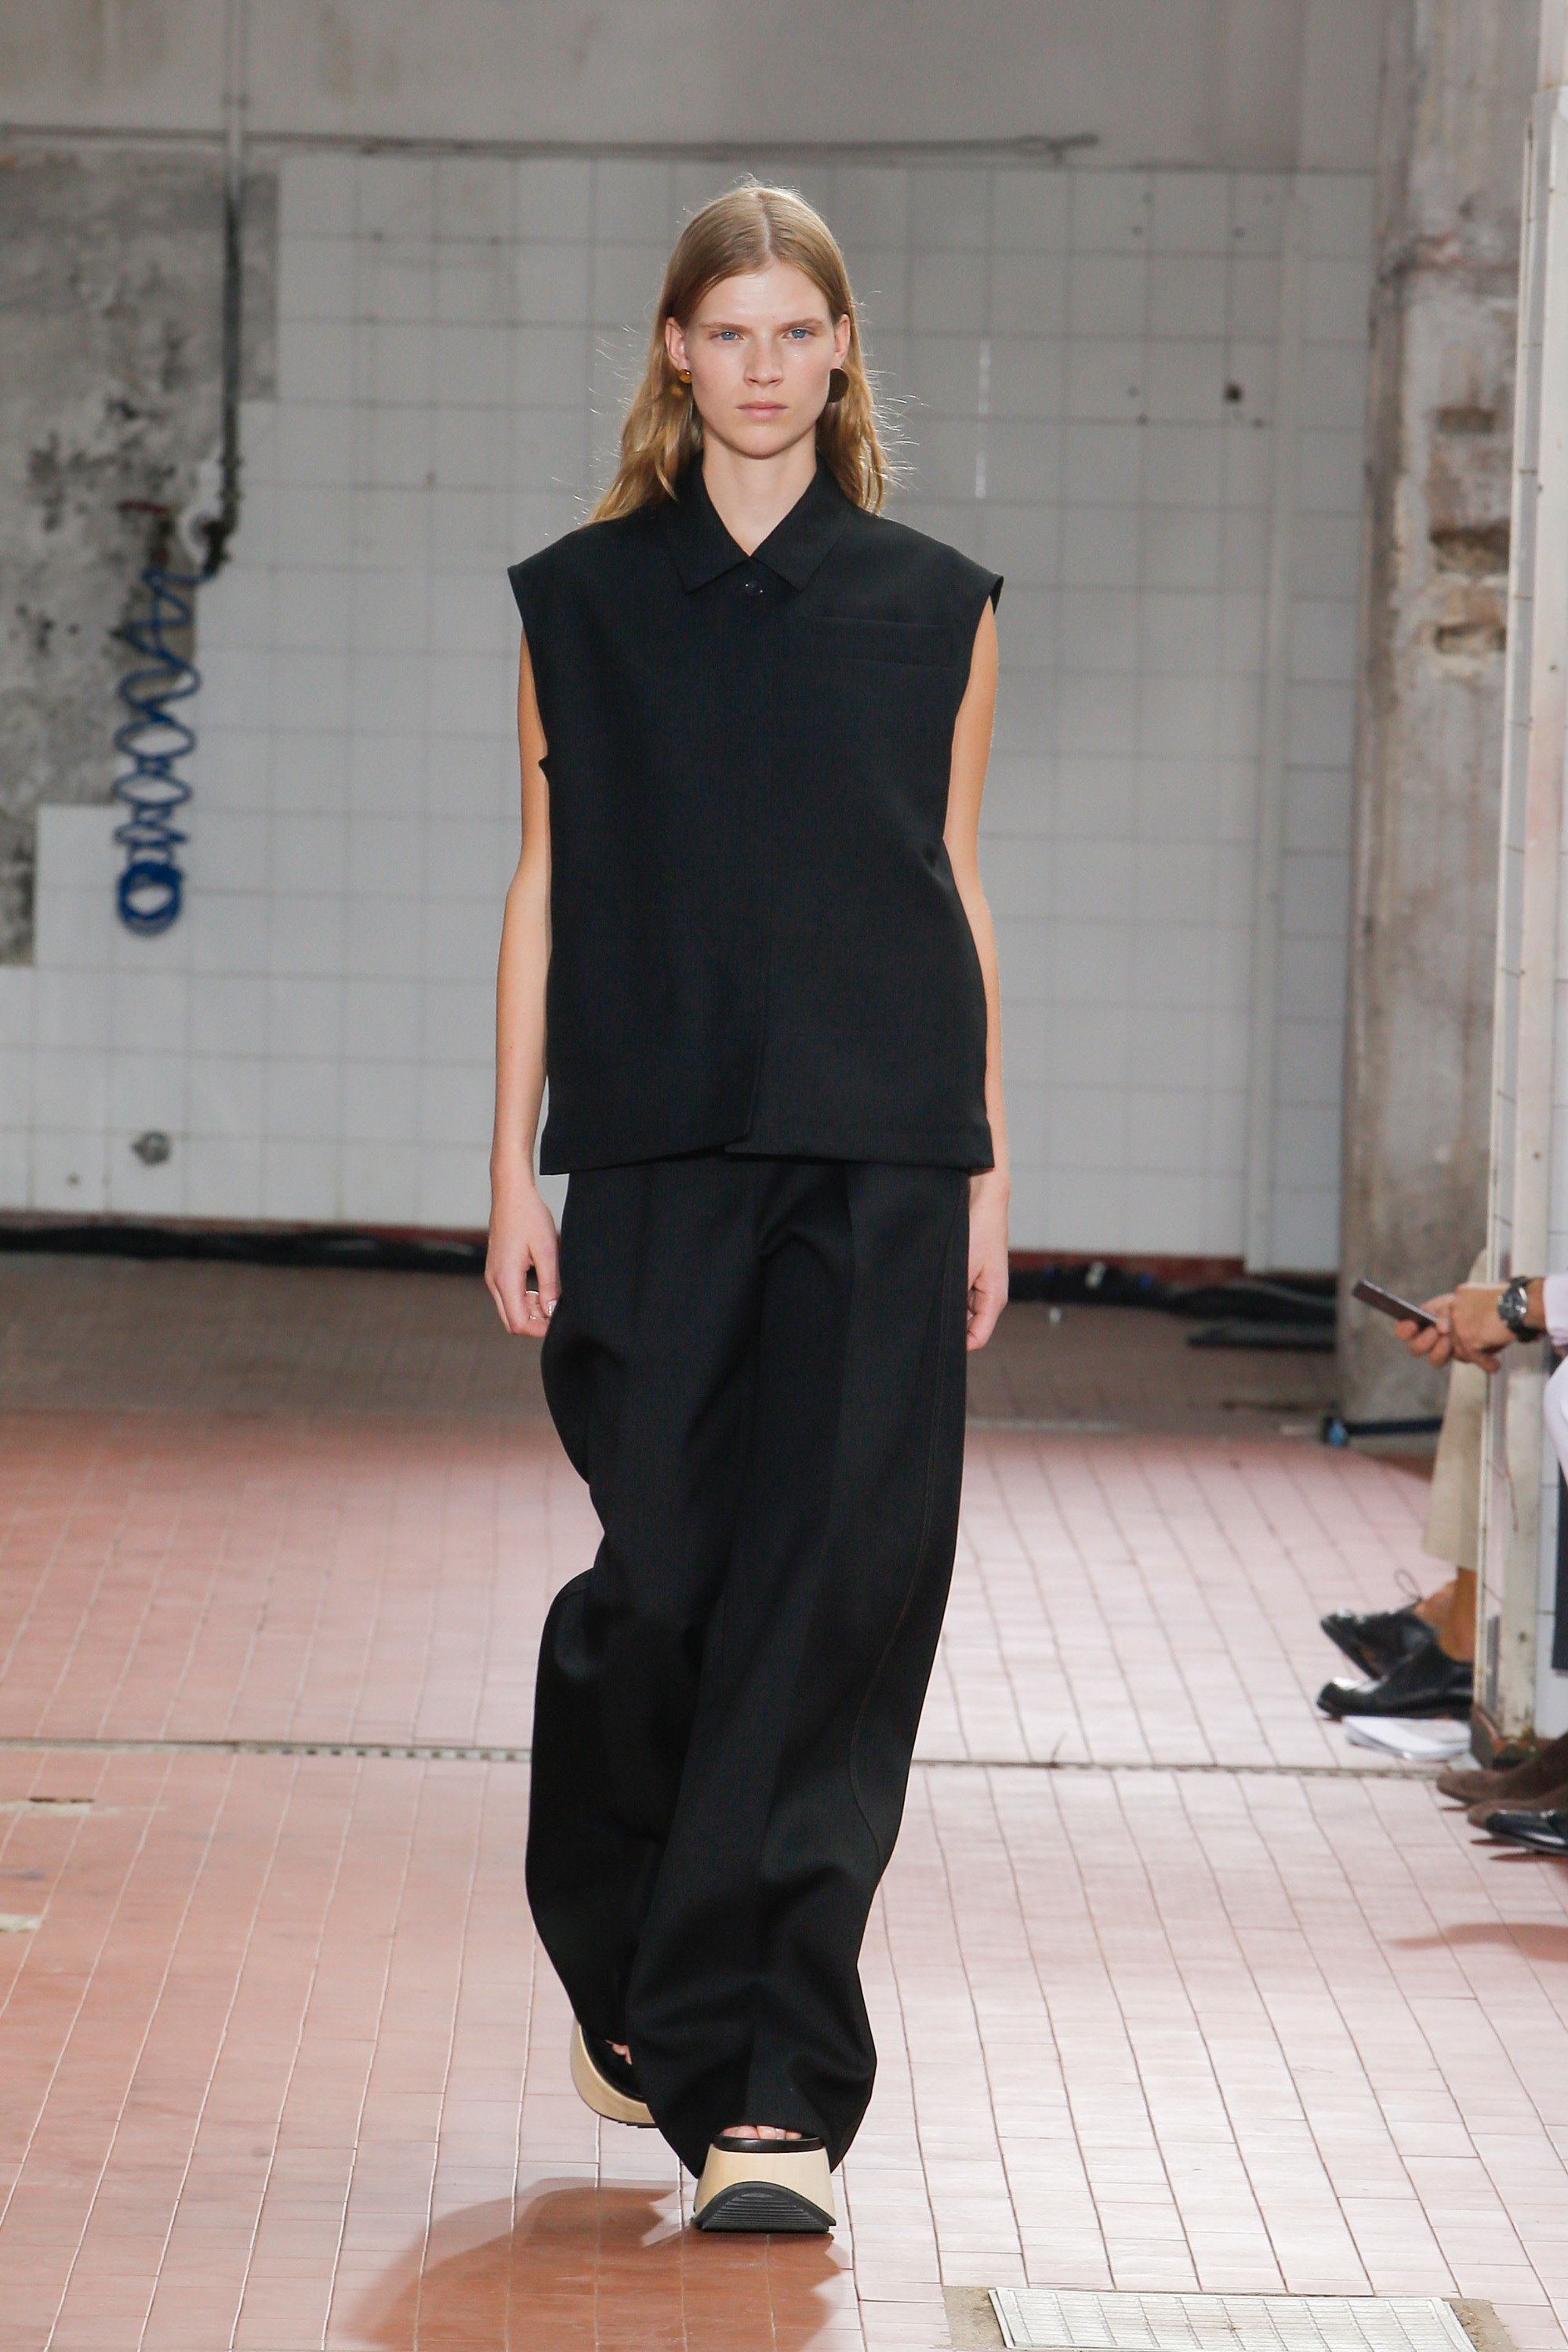 Milan Fashion Week, Jil Sander, MFW, Spring 2019 Ready-to-Wear, show, runway, Lucie Meier, Luke Meier, brand, creative duo, Alan Weisman, book, The World Without Us, collection, fashion house, trends 2019